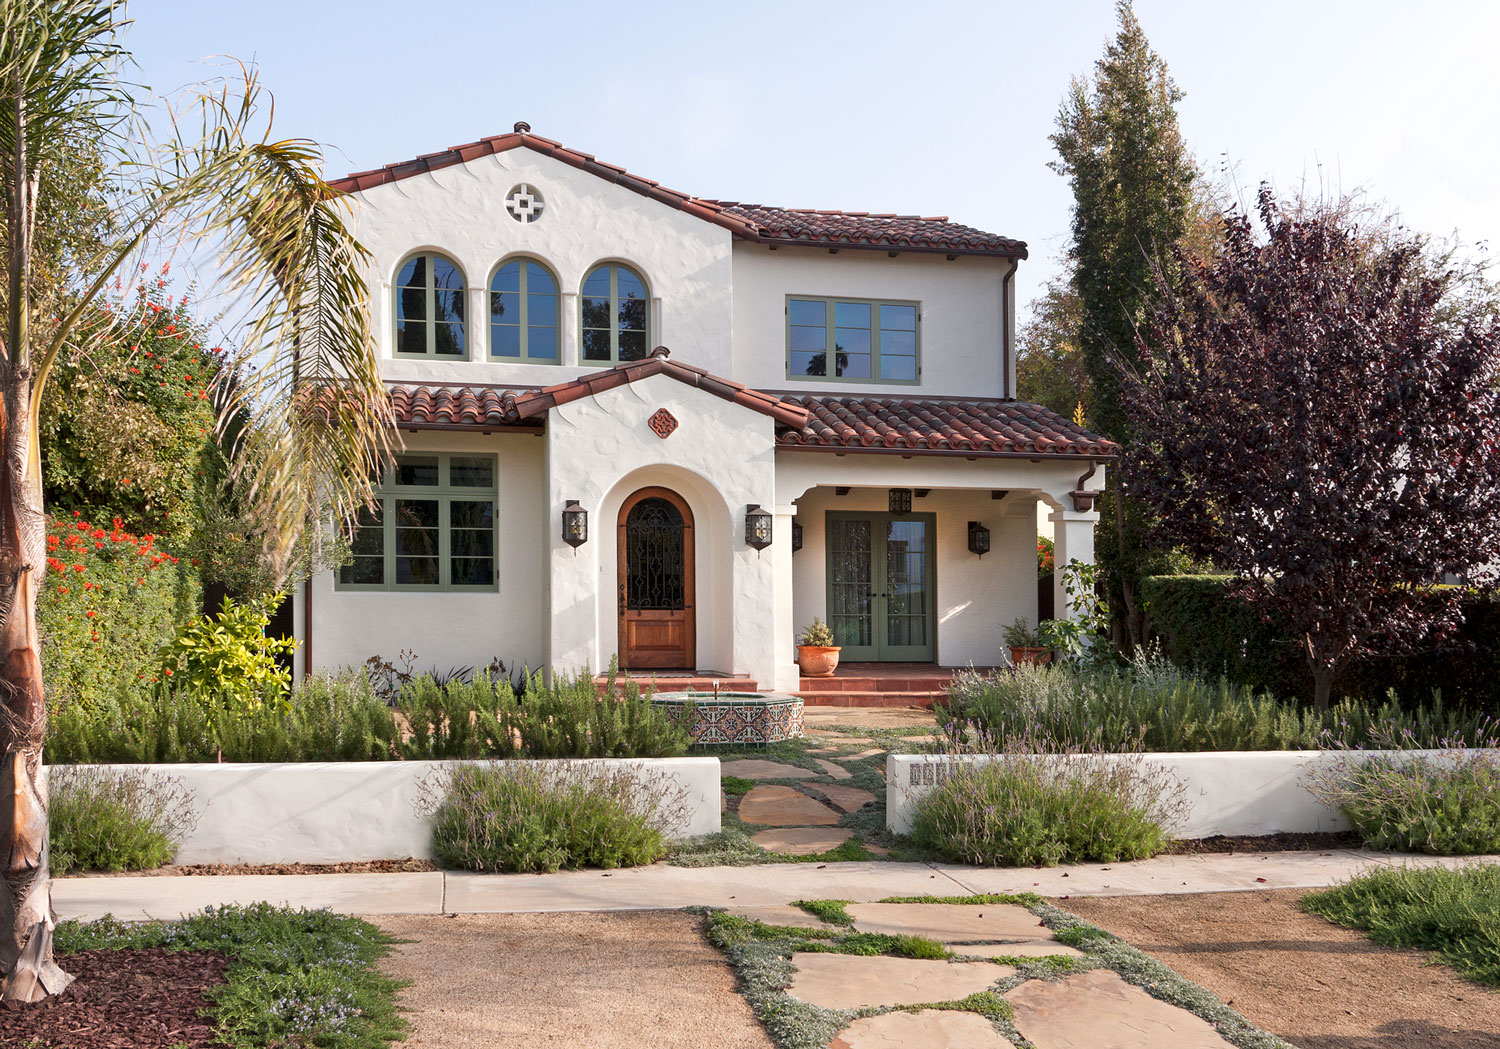 01-contemporary-spanish-drought-resistant-landscaping-front-facade-gary-drake-general-contractor.jpg